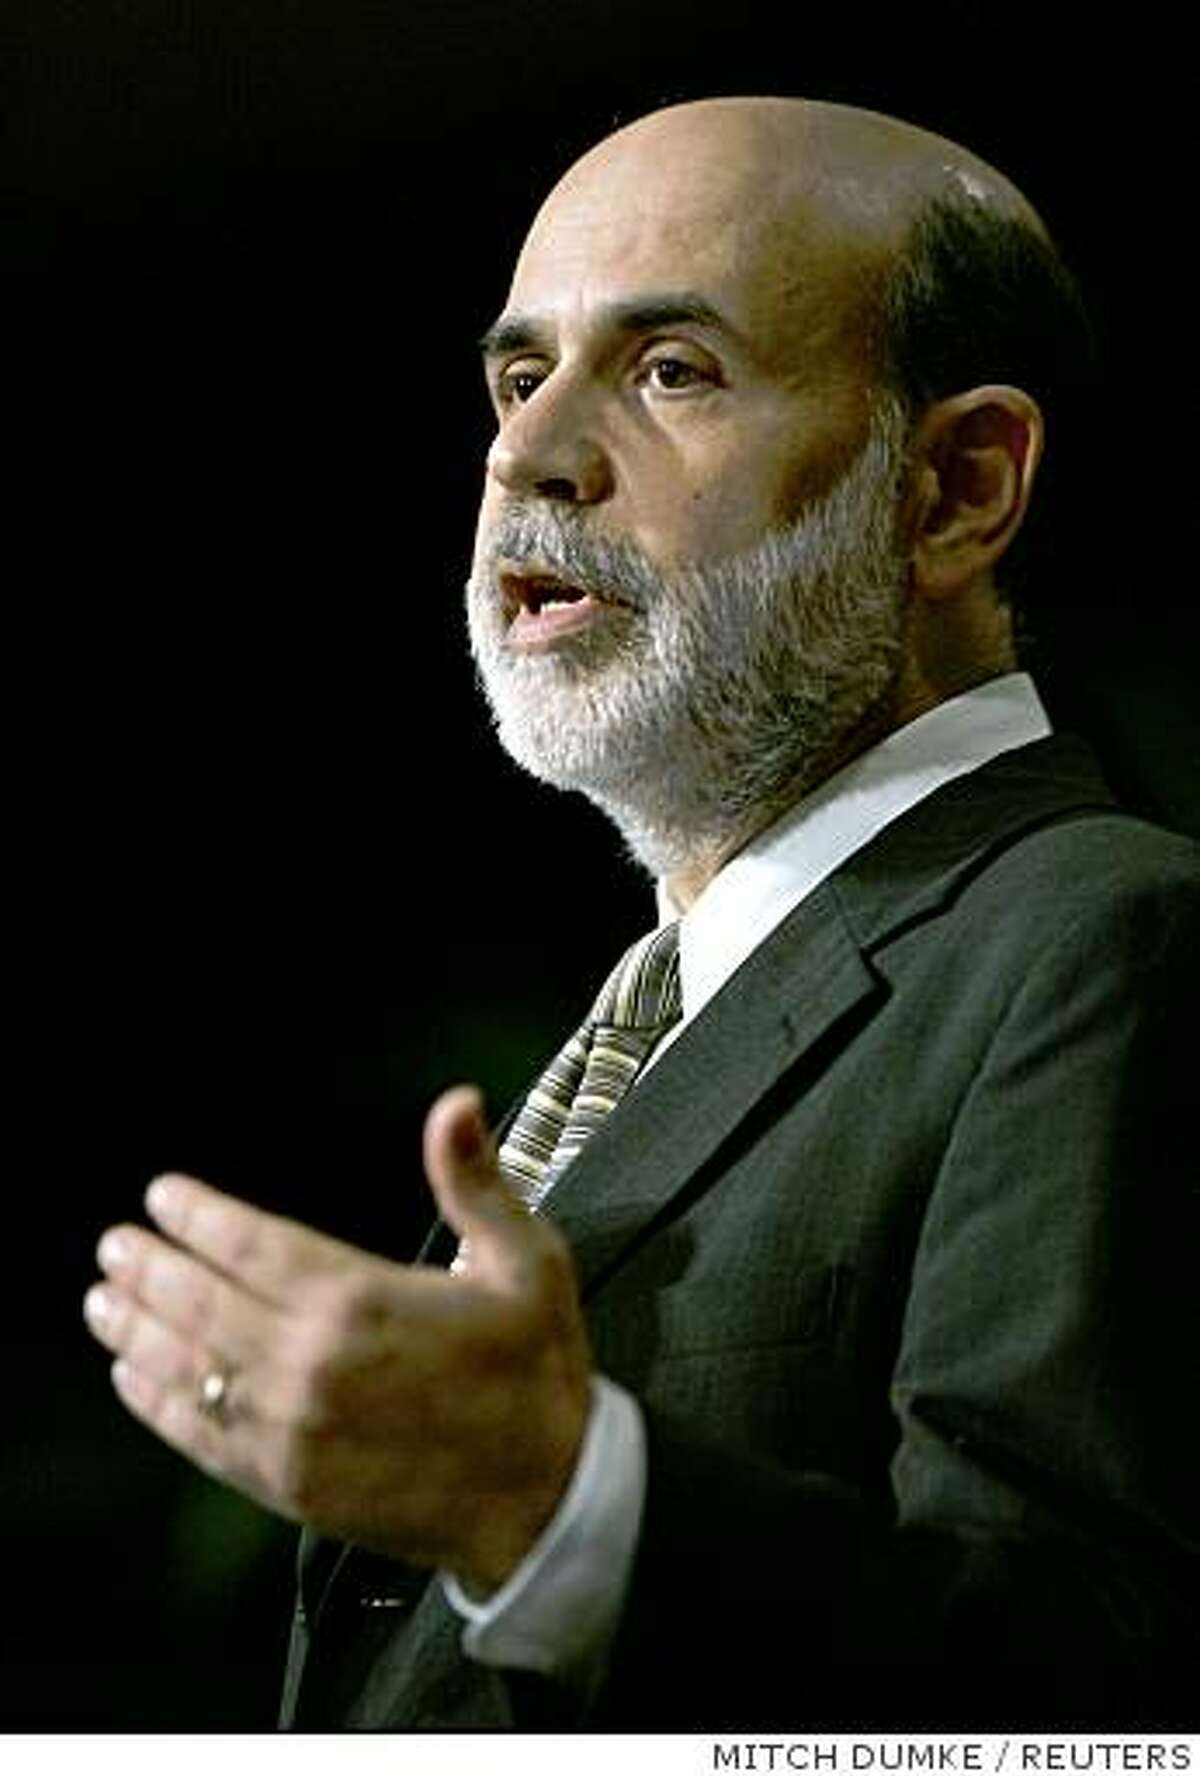 U.S. Federal Reserve Chairman Ben Bernanke speaks to the National Association for Business Economics (NABE) about the current state of the economy in Washington, on Tuesday, Oct. 7, 2008.